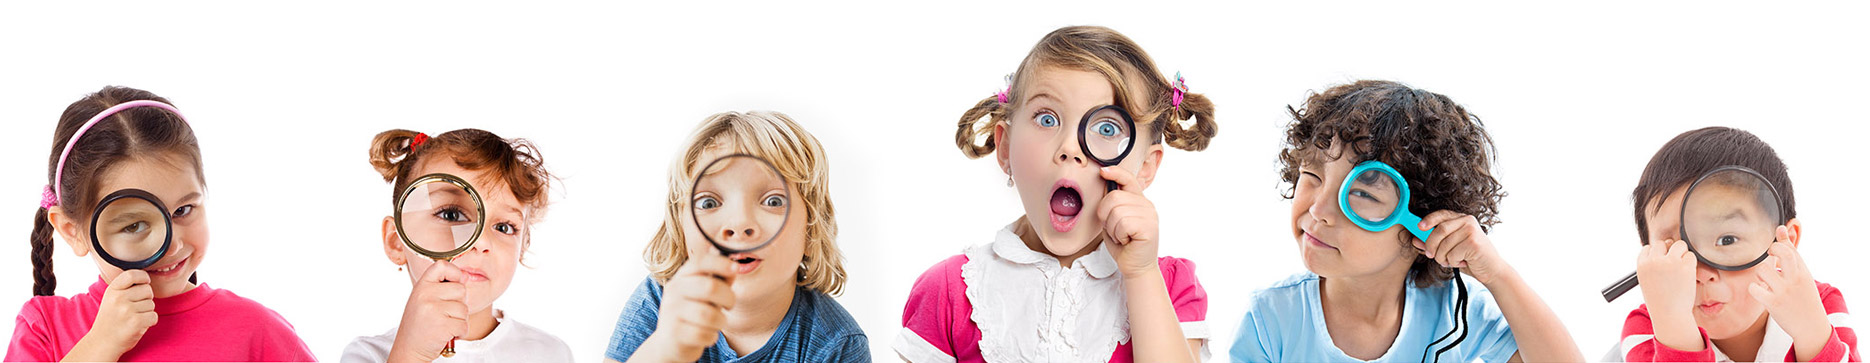 kids with magnifying glasses find a pediatric dentist